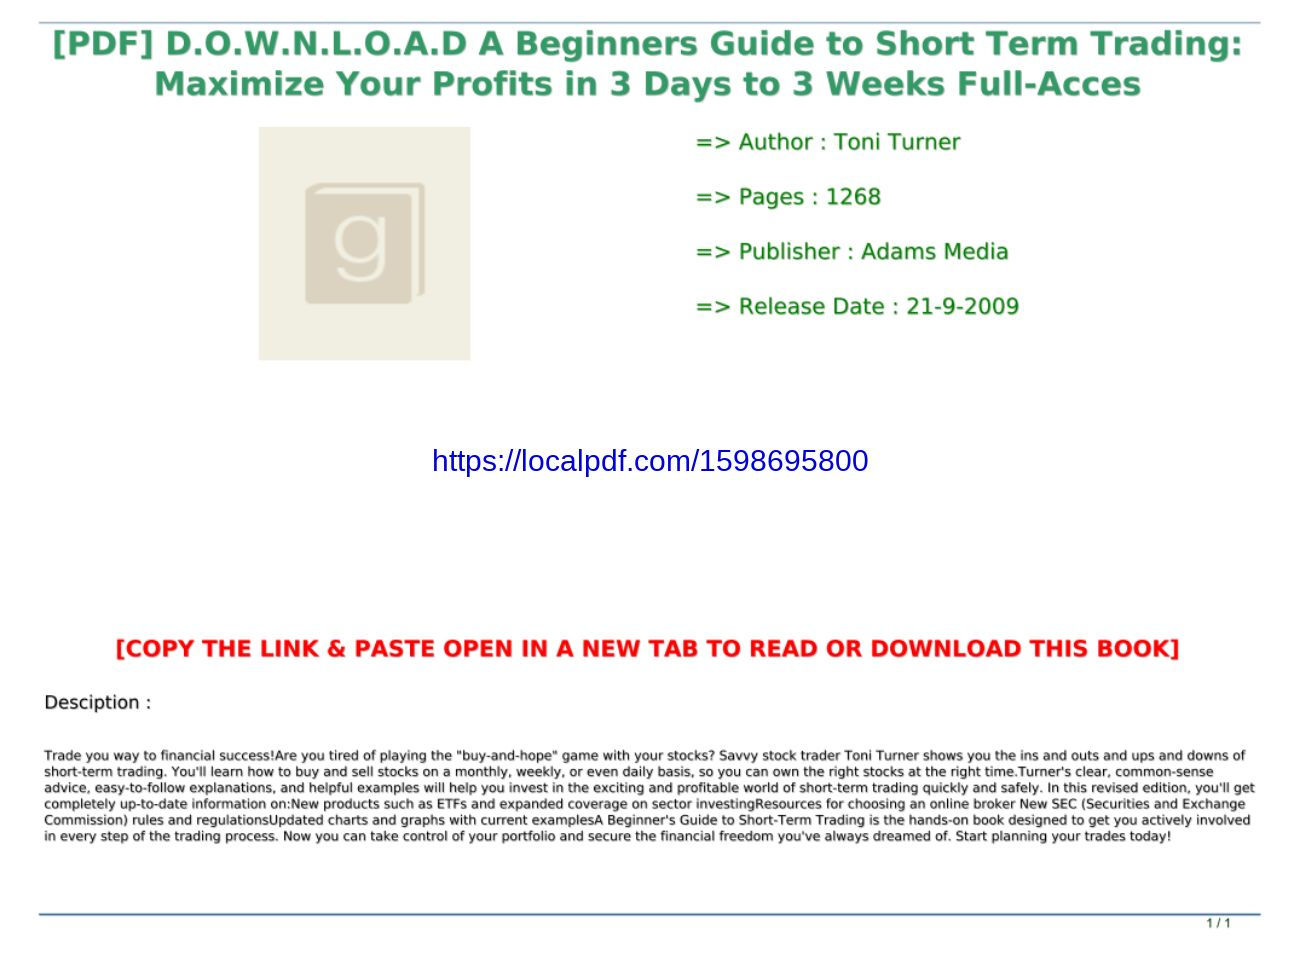 Beginners Guide To Short Term Trading Pdf